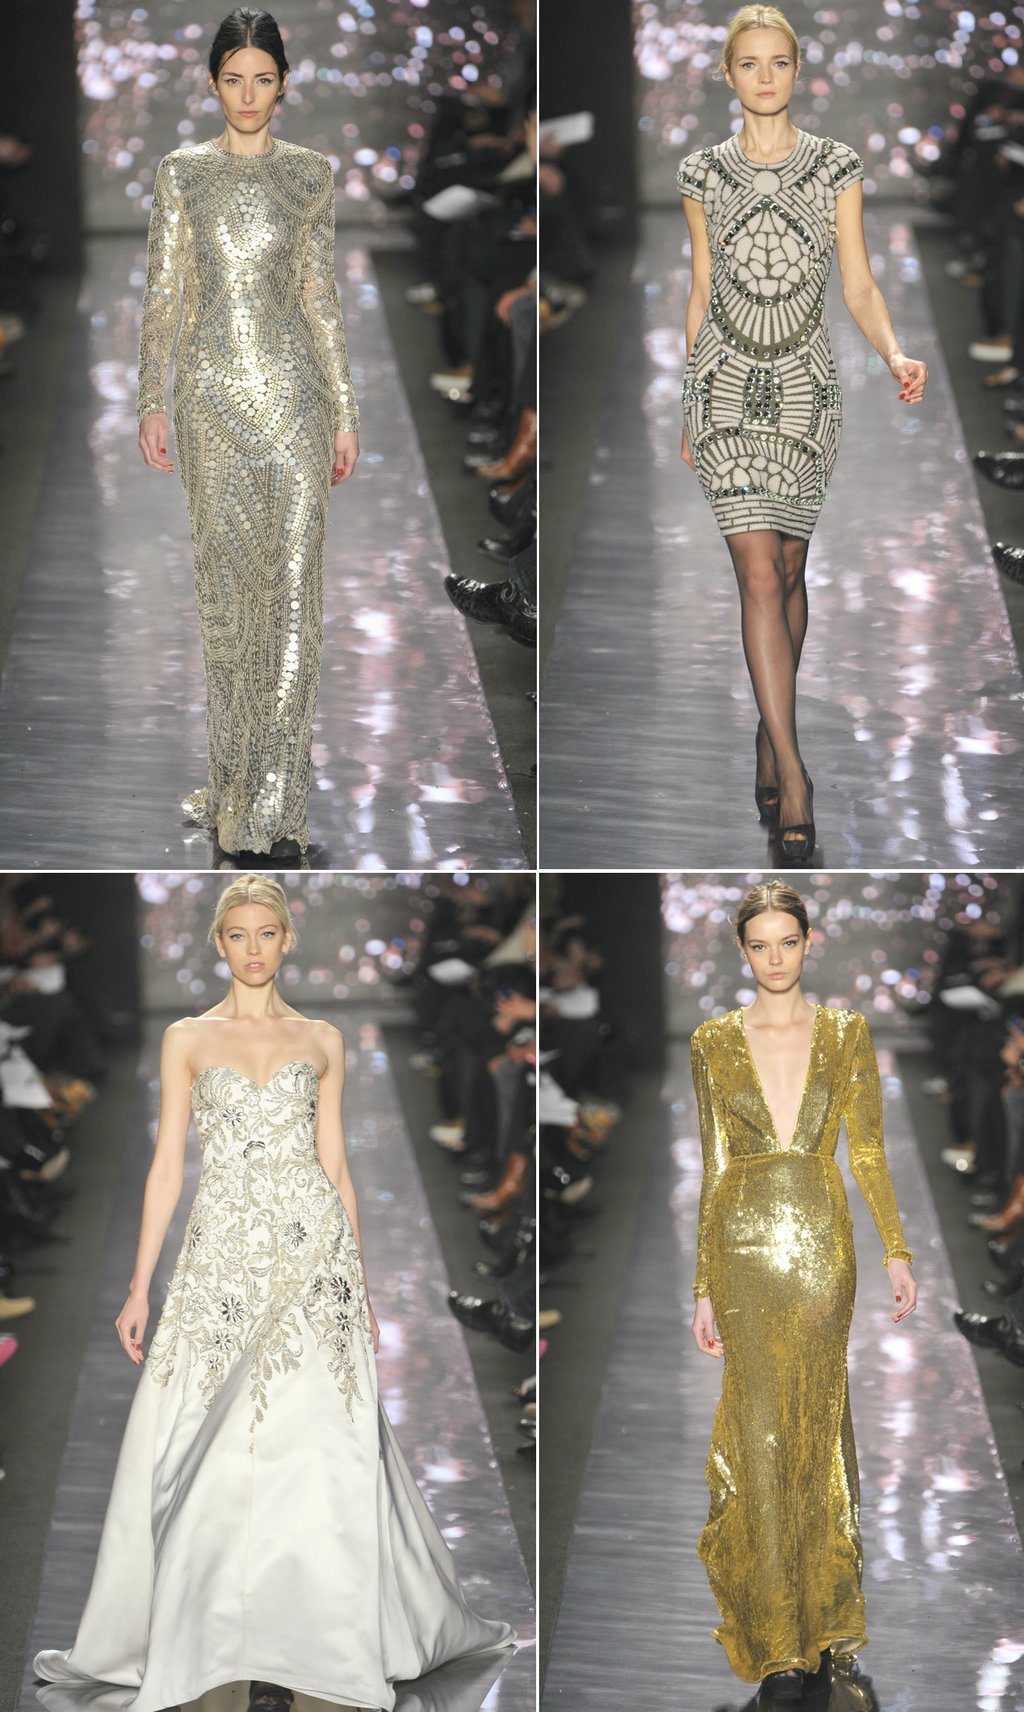 chic 2012 bride wedding dress inspiration Spring 2012 RTW Naeem Khan gold silver gowns